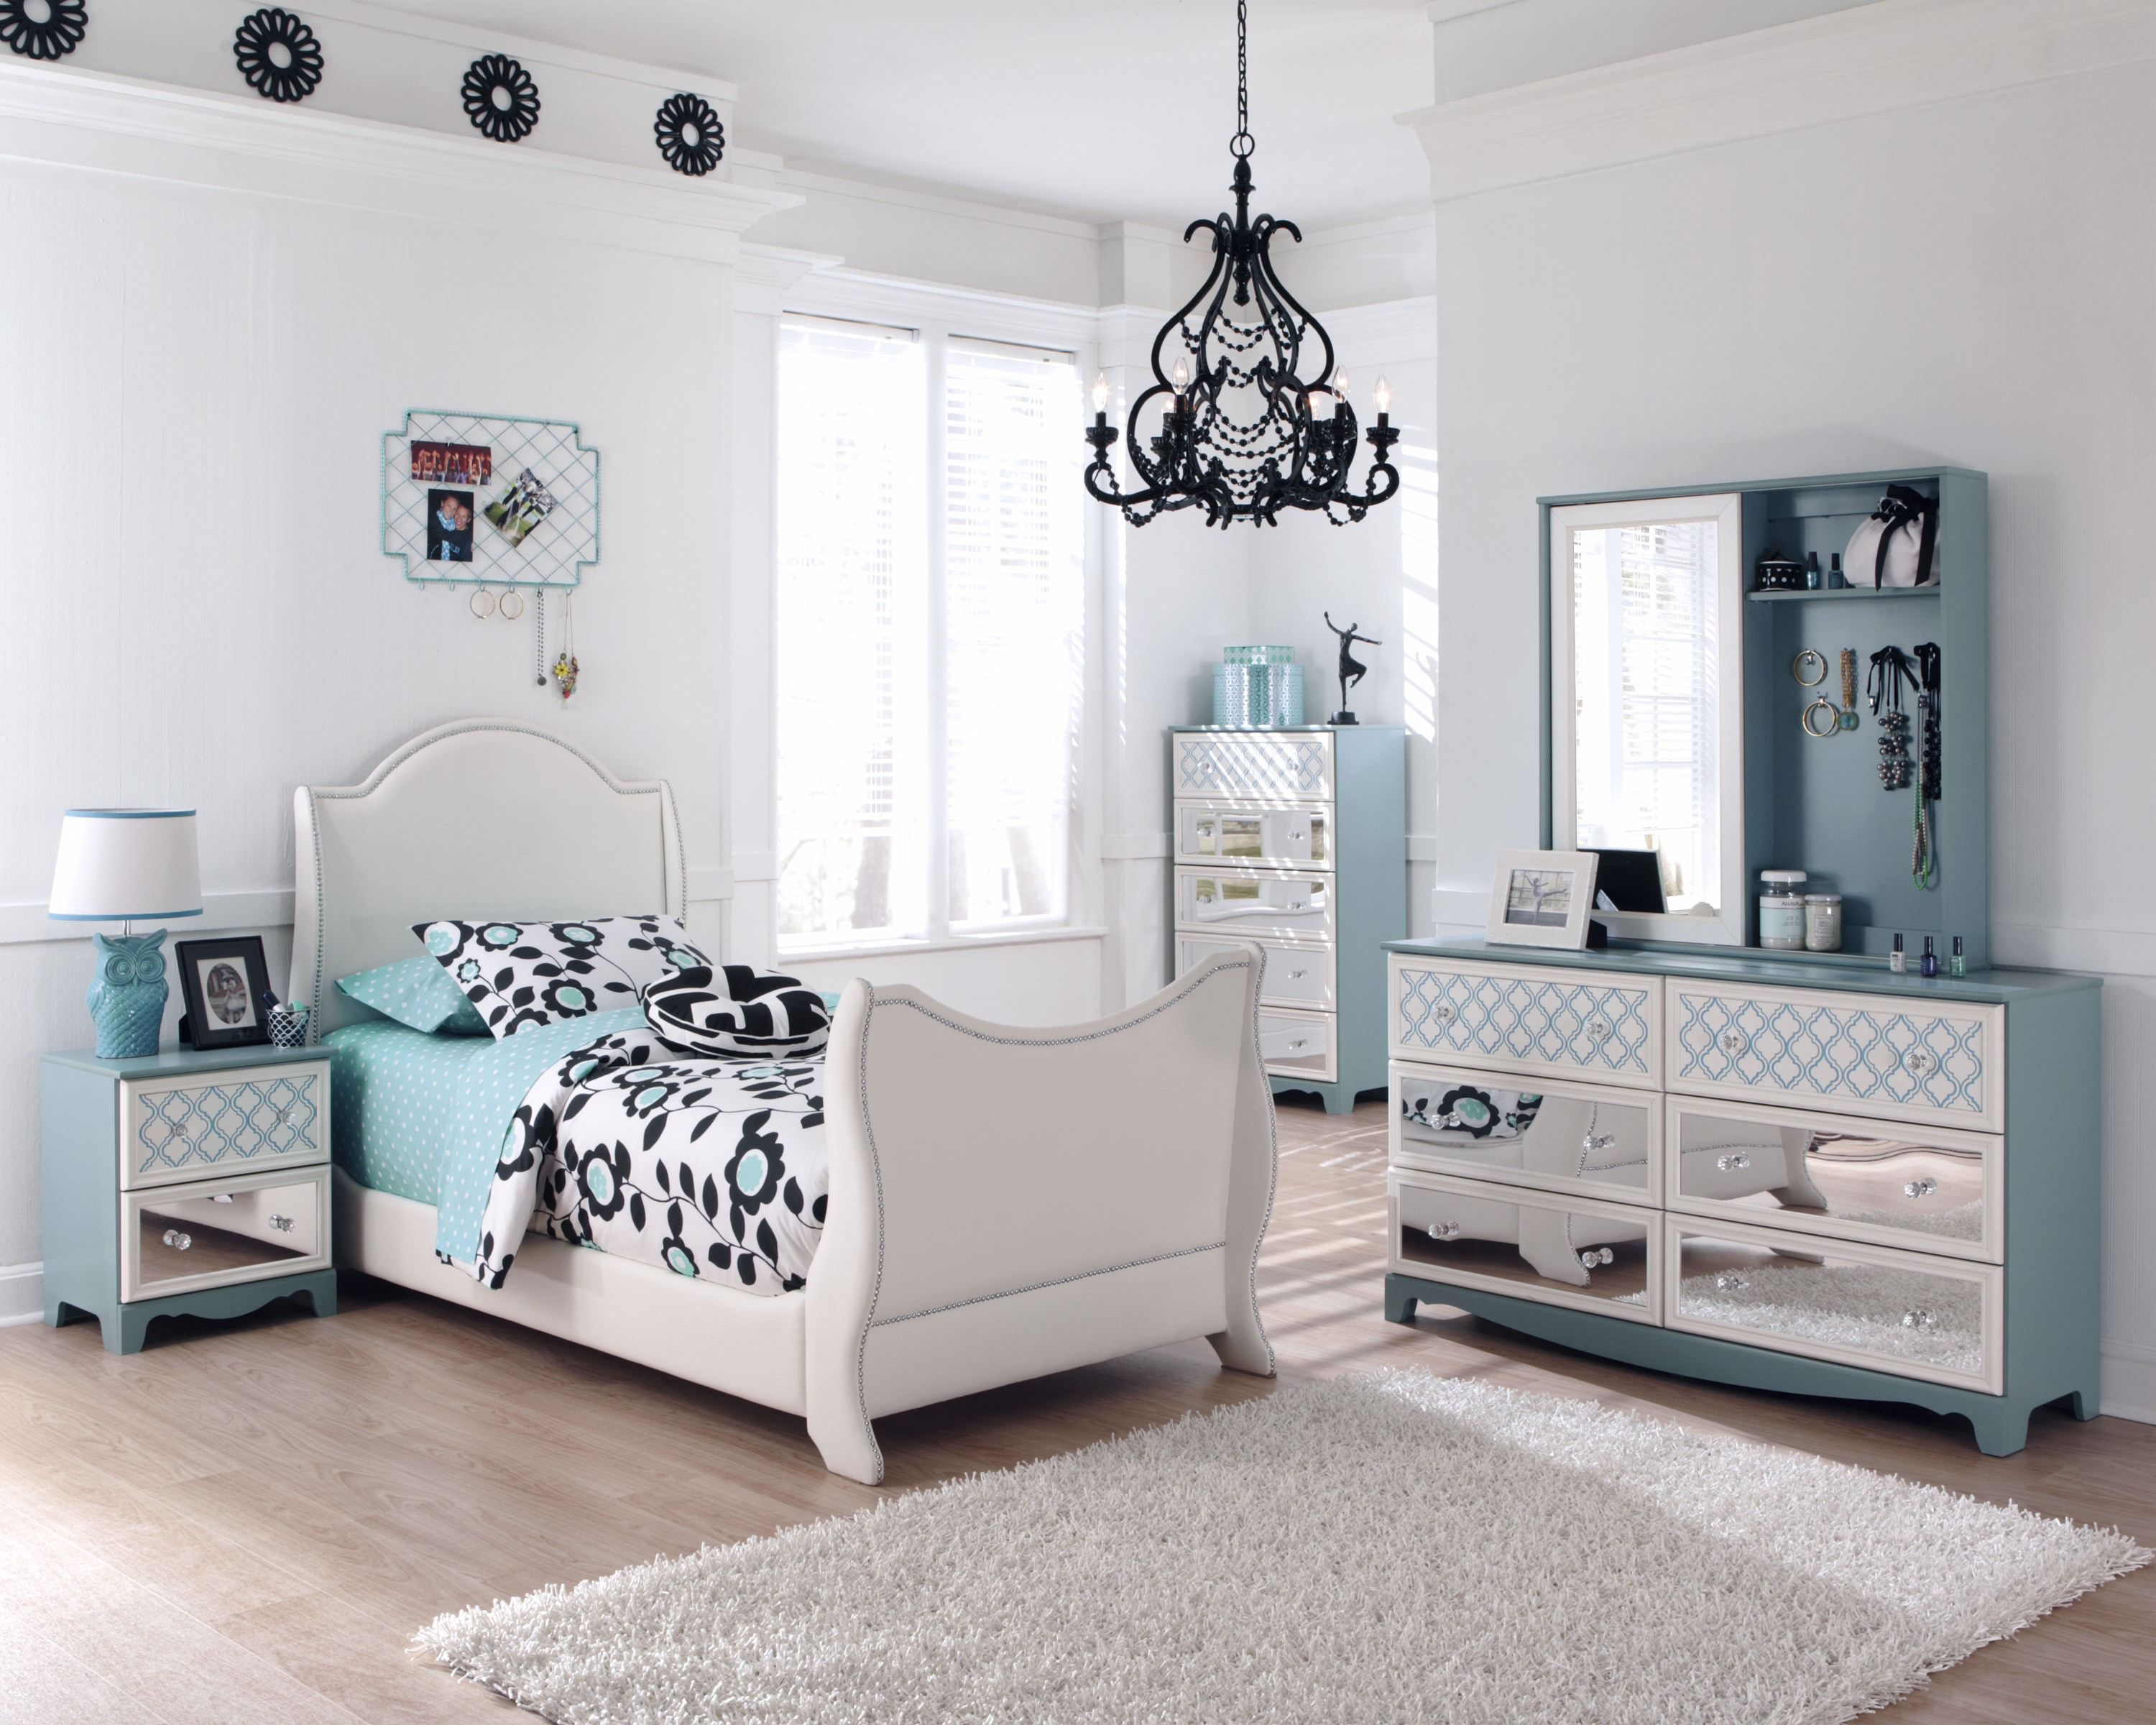 decorating with mirrored bedroom furniture photo - 7